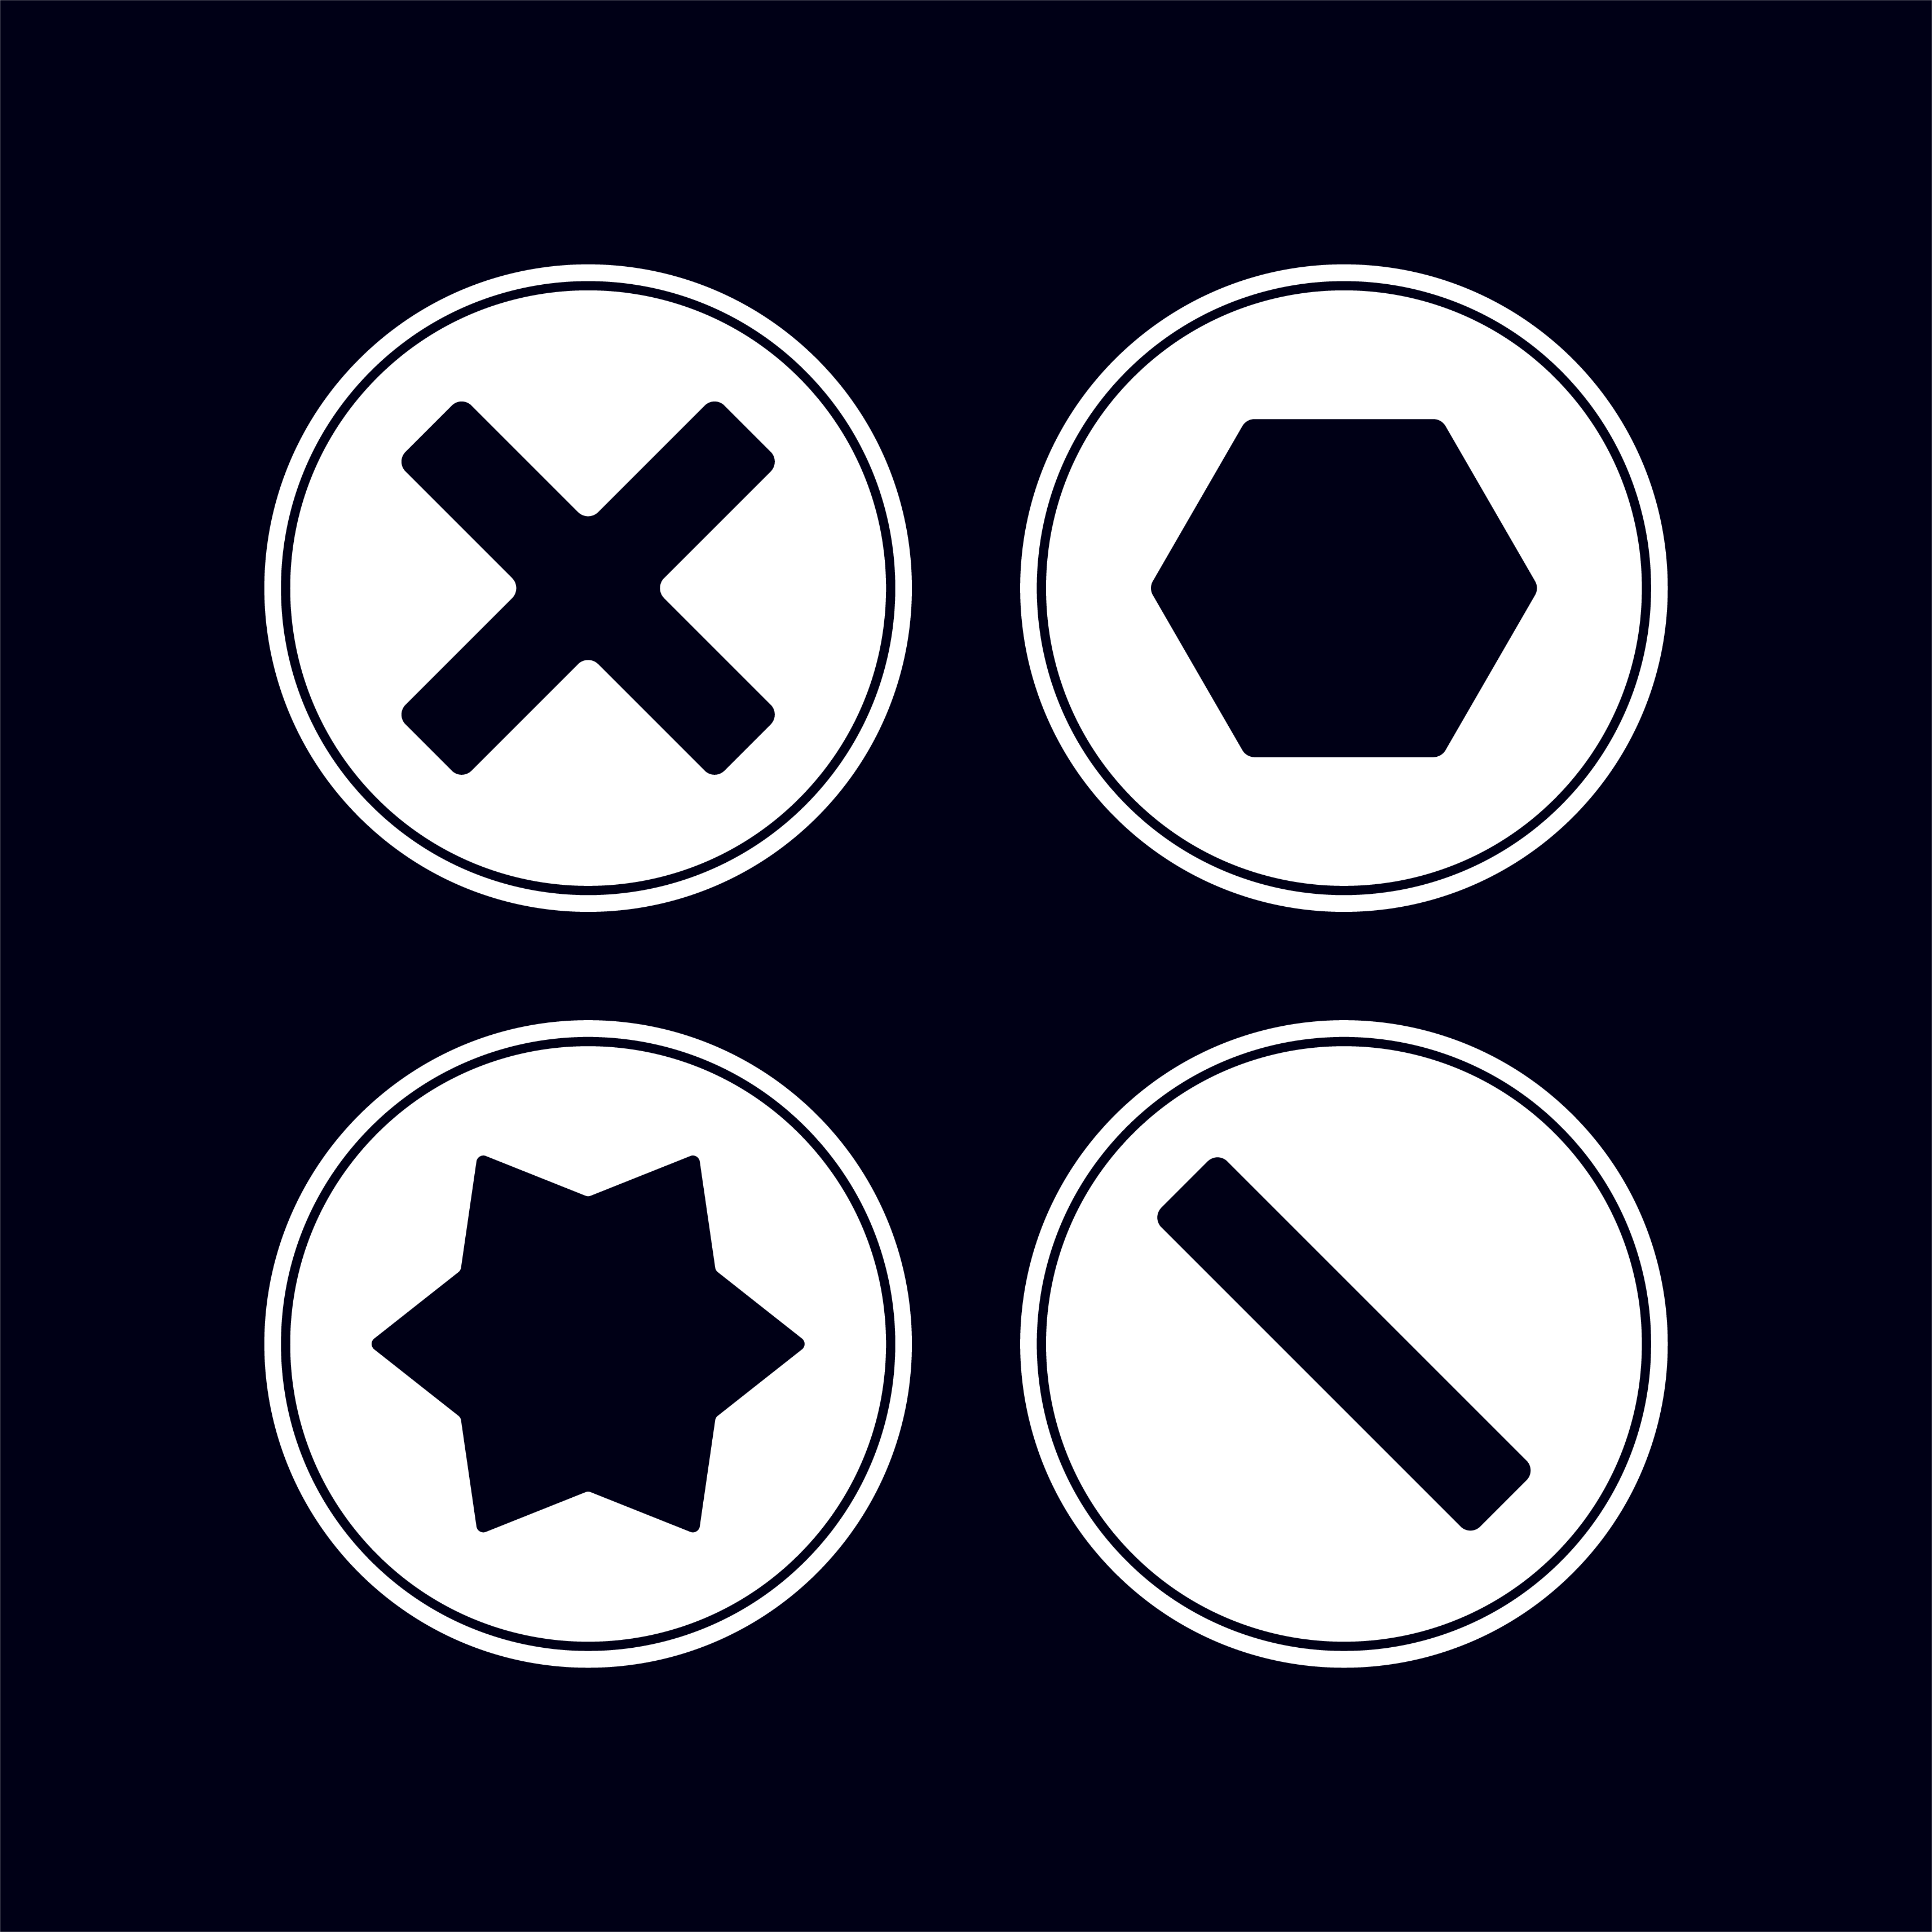 Logo-form inspired by four types of screw heads: Frearson, Hex, Torx and Slotted